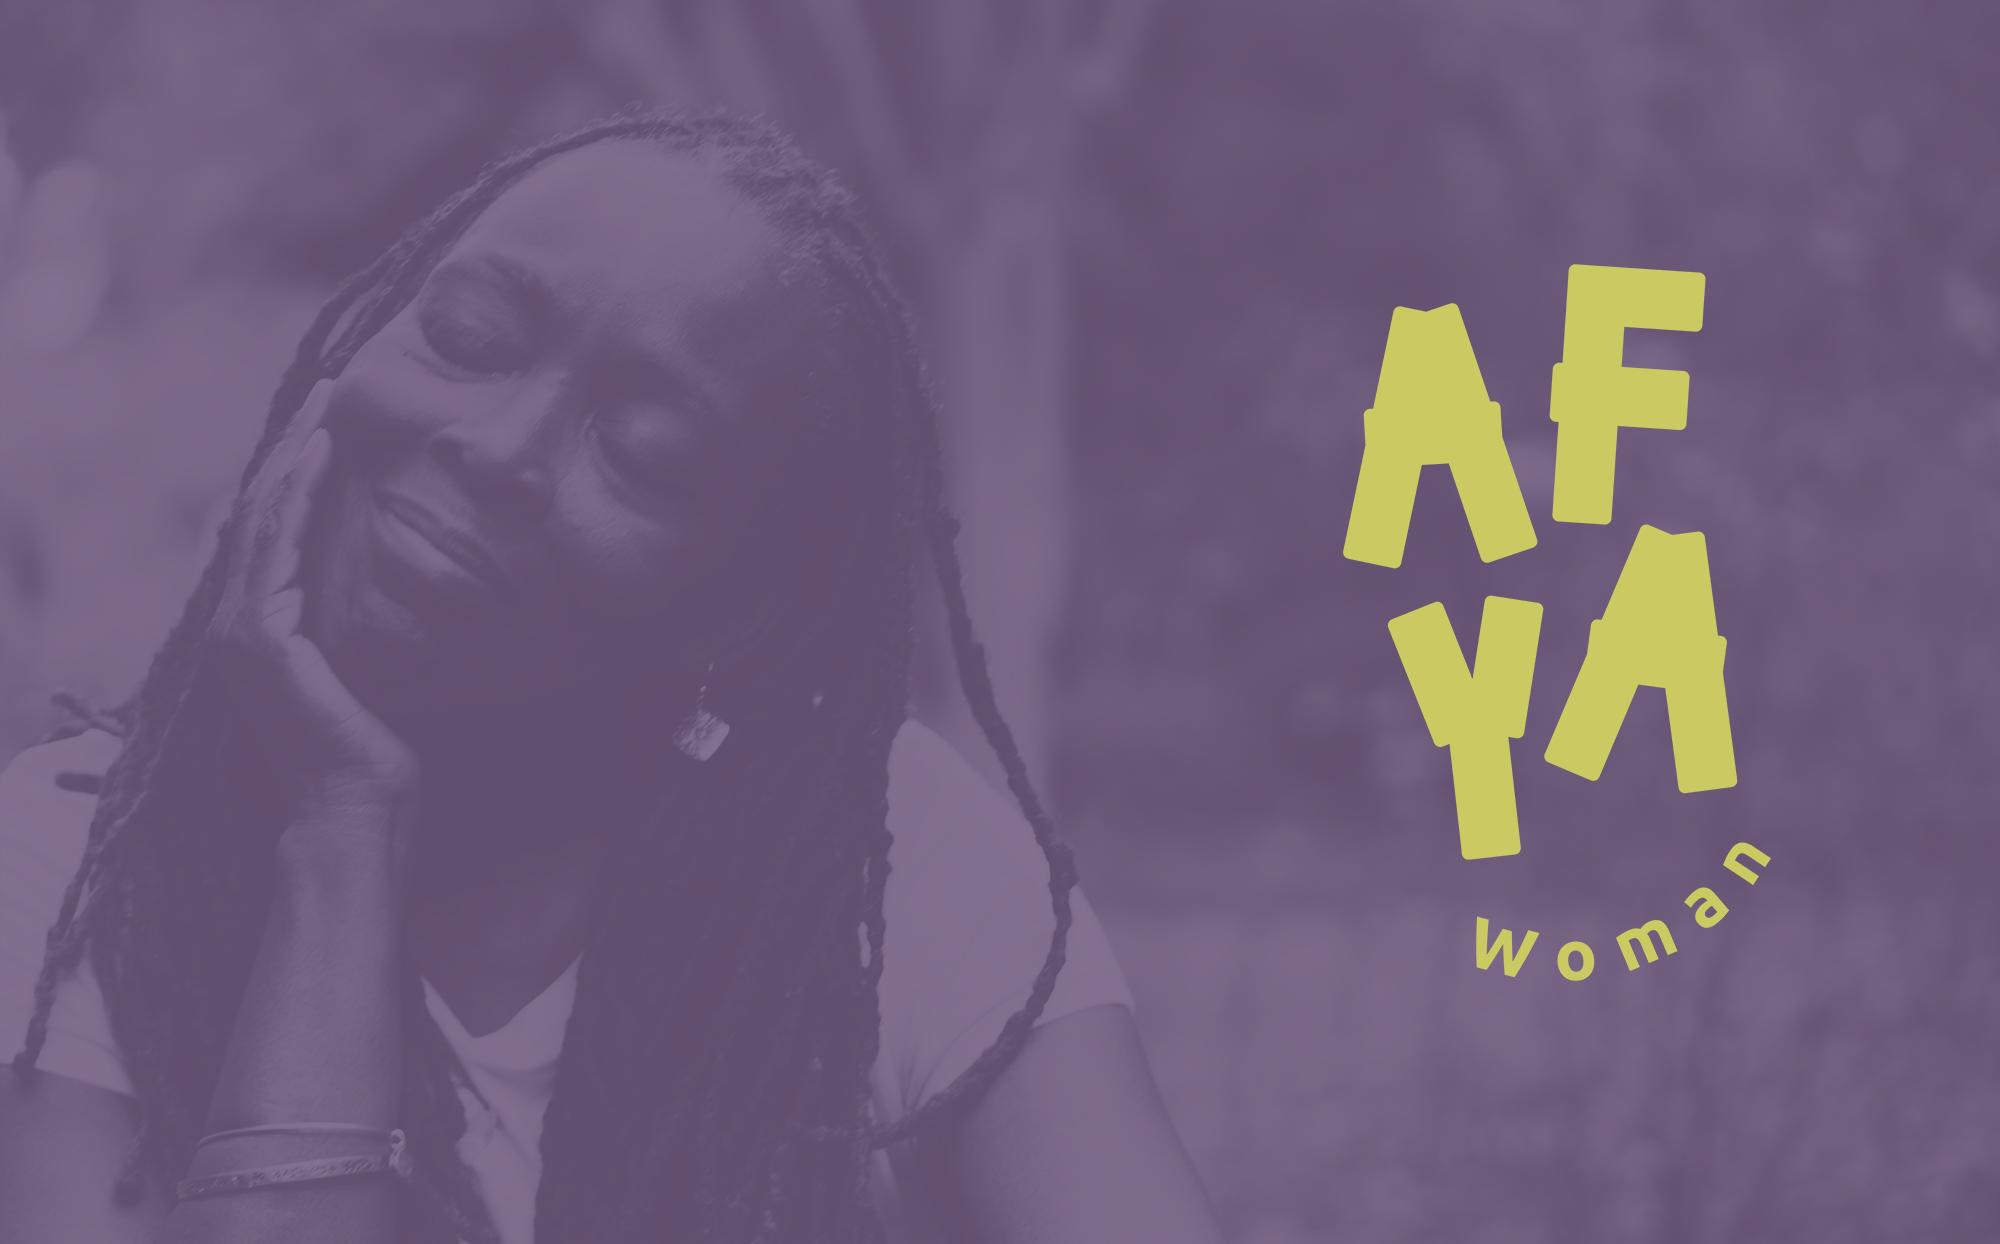 Afya Woman Alternative Logo